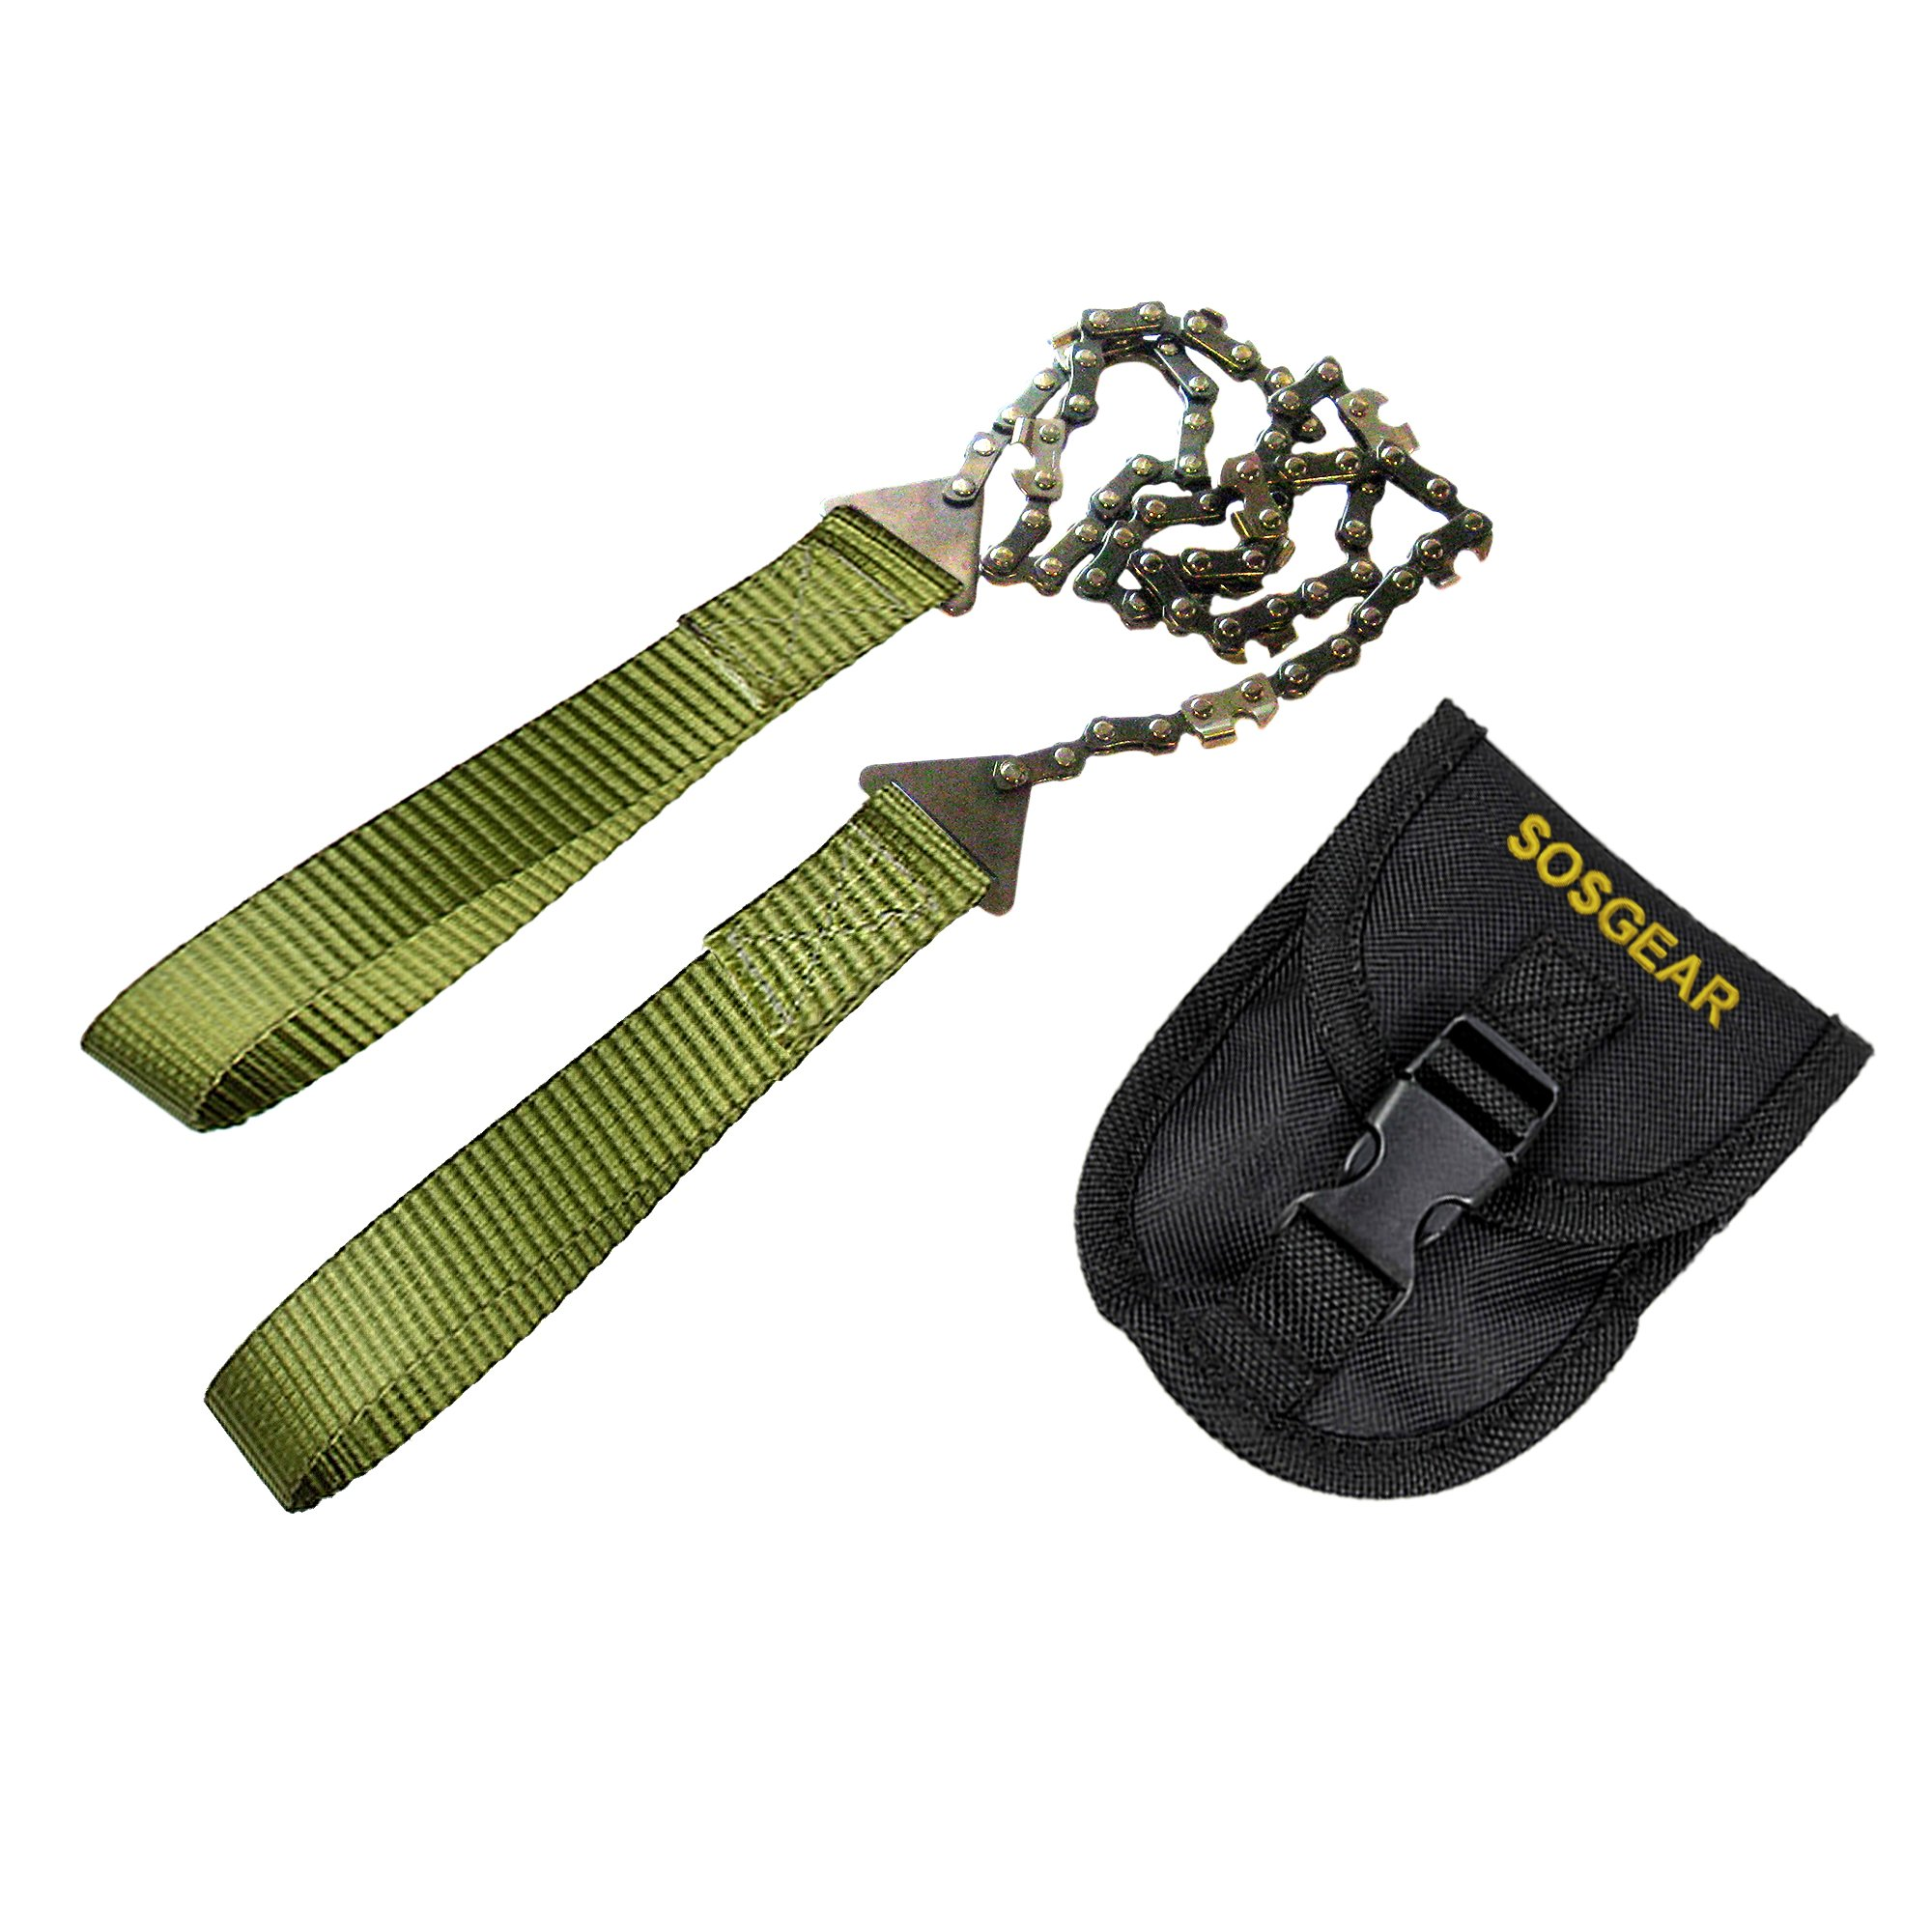 SOS Gear Pocket Chainsaw and Fire Starter - Survival Hand Saw, Firestarter with Built in Compass & Whistle, Embroidered Pouch for Camping & Backpacking - Green Straps, 36'' Chain by SOSGEAR (Image #6)